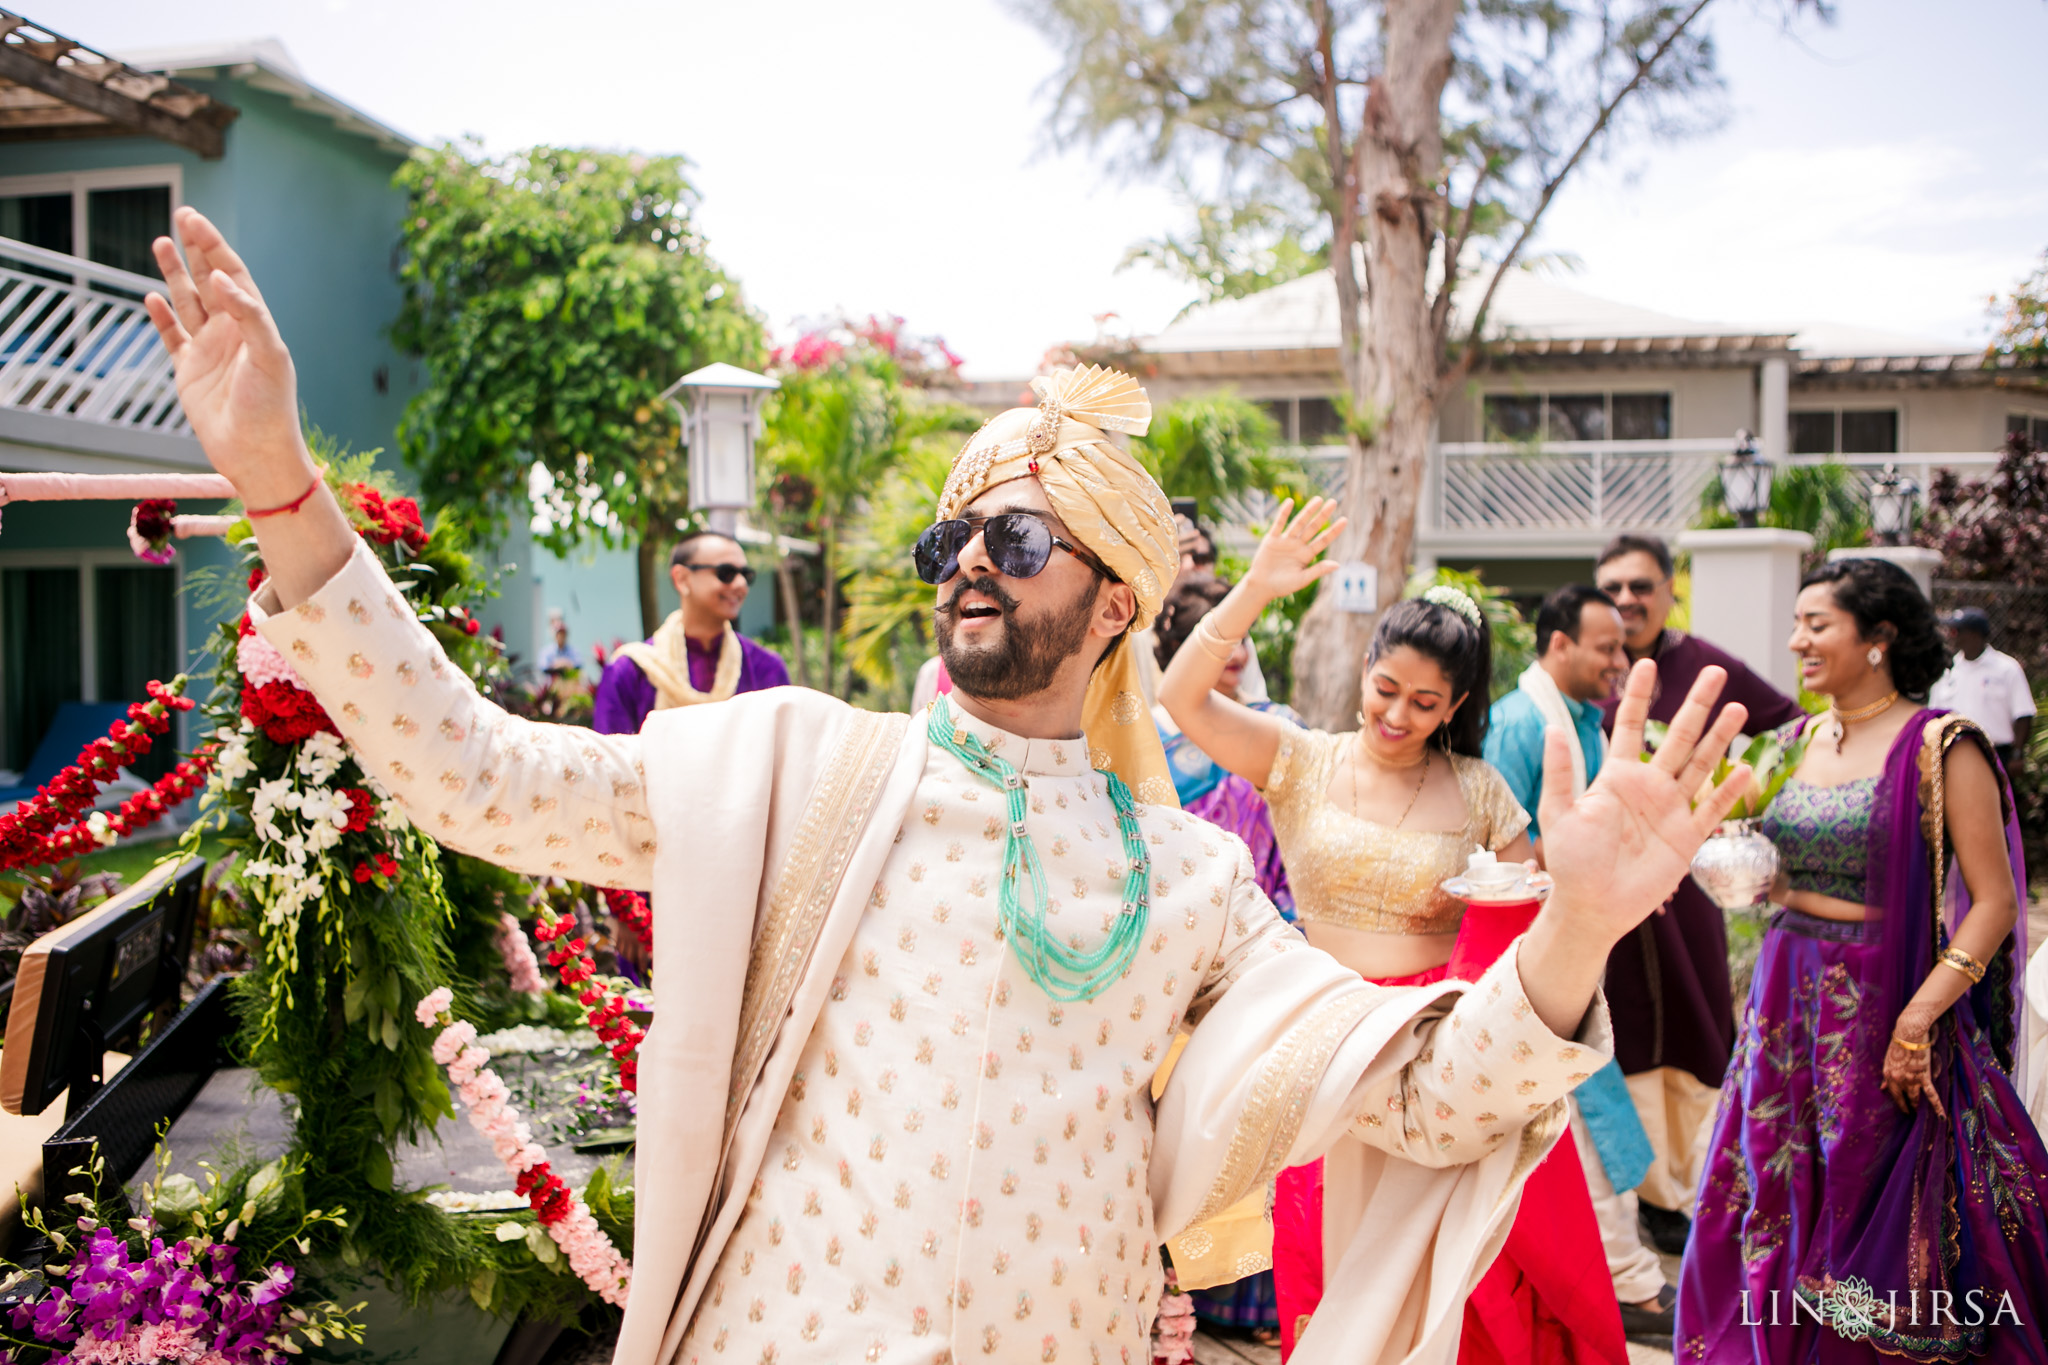 12 Turks and Caicos Travel Indian Wedding Photography